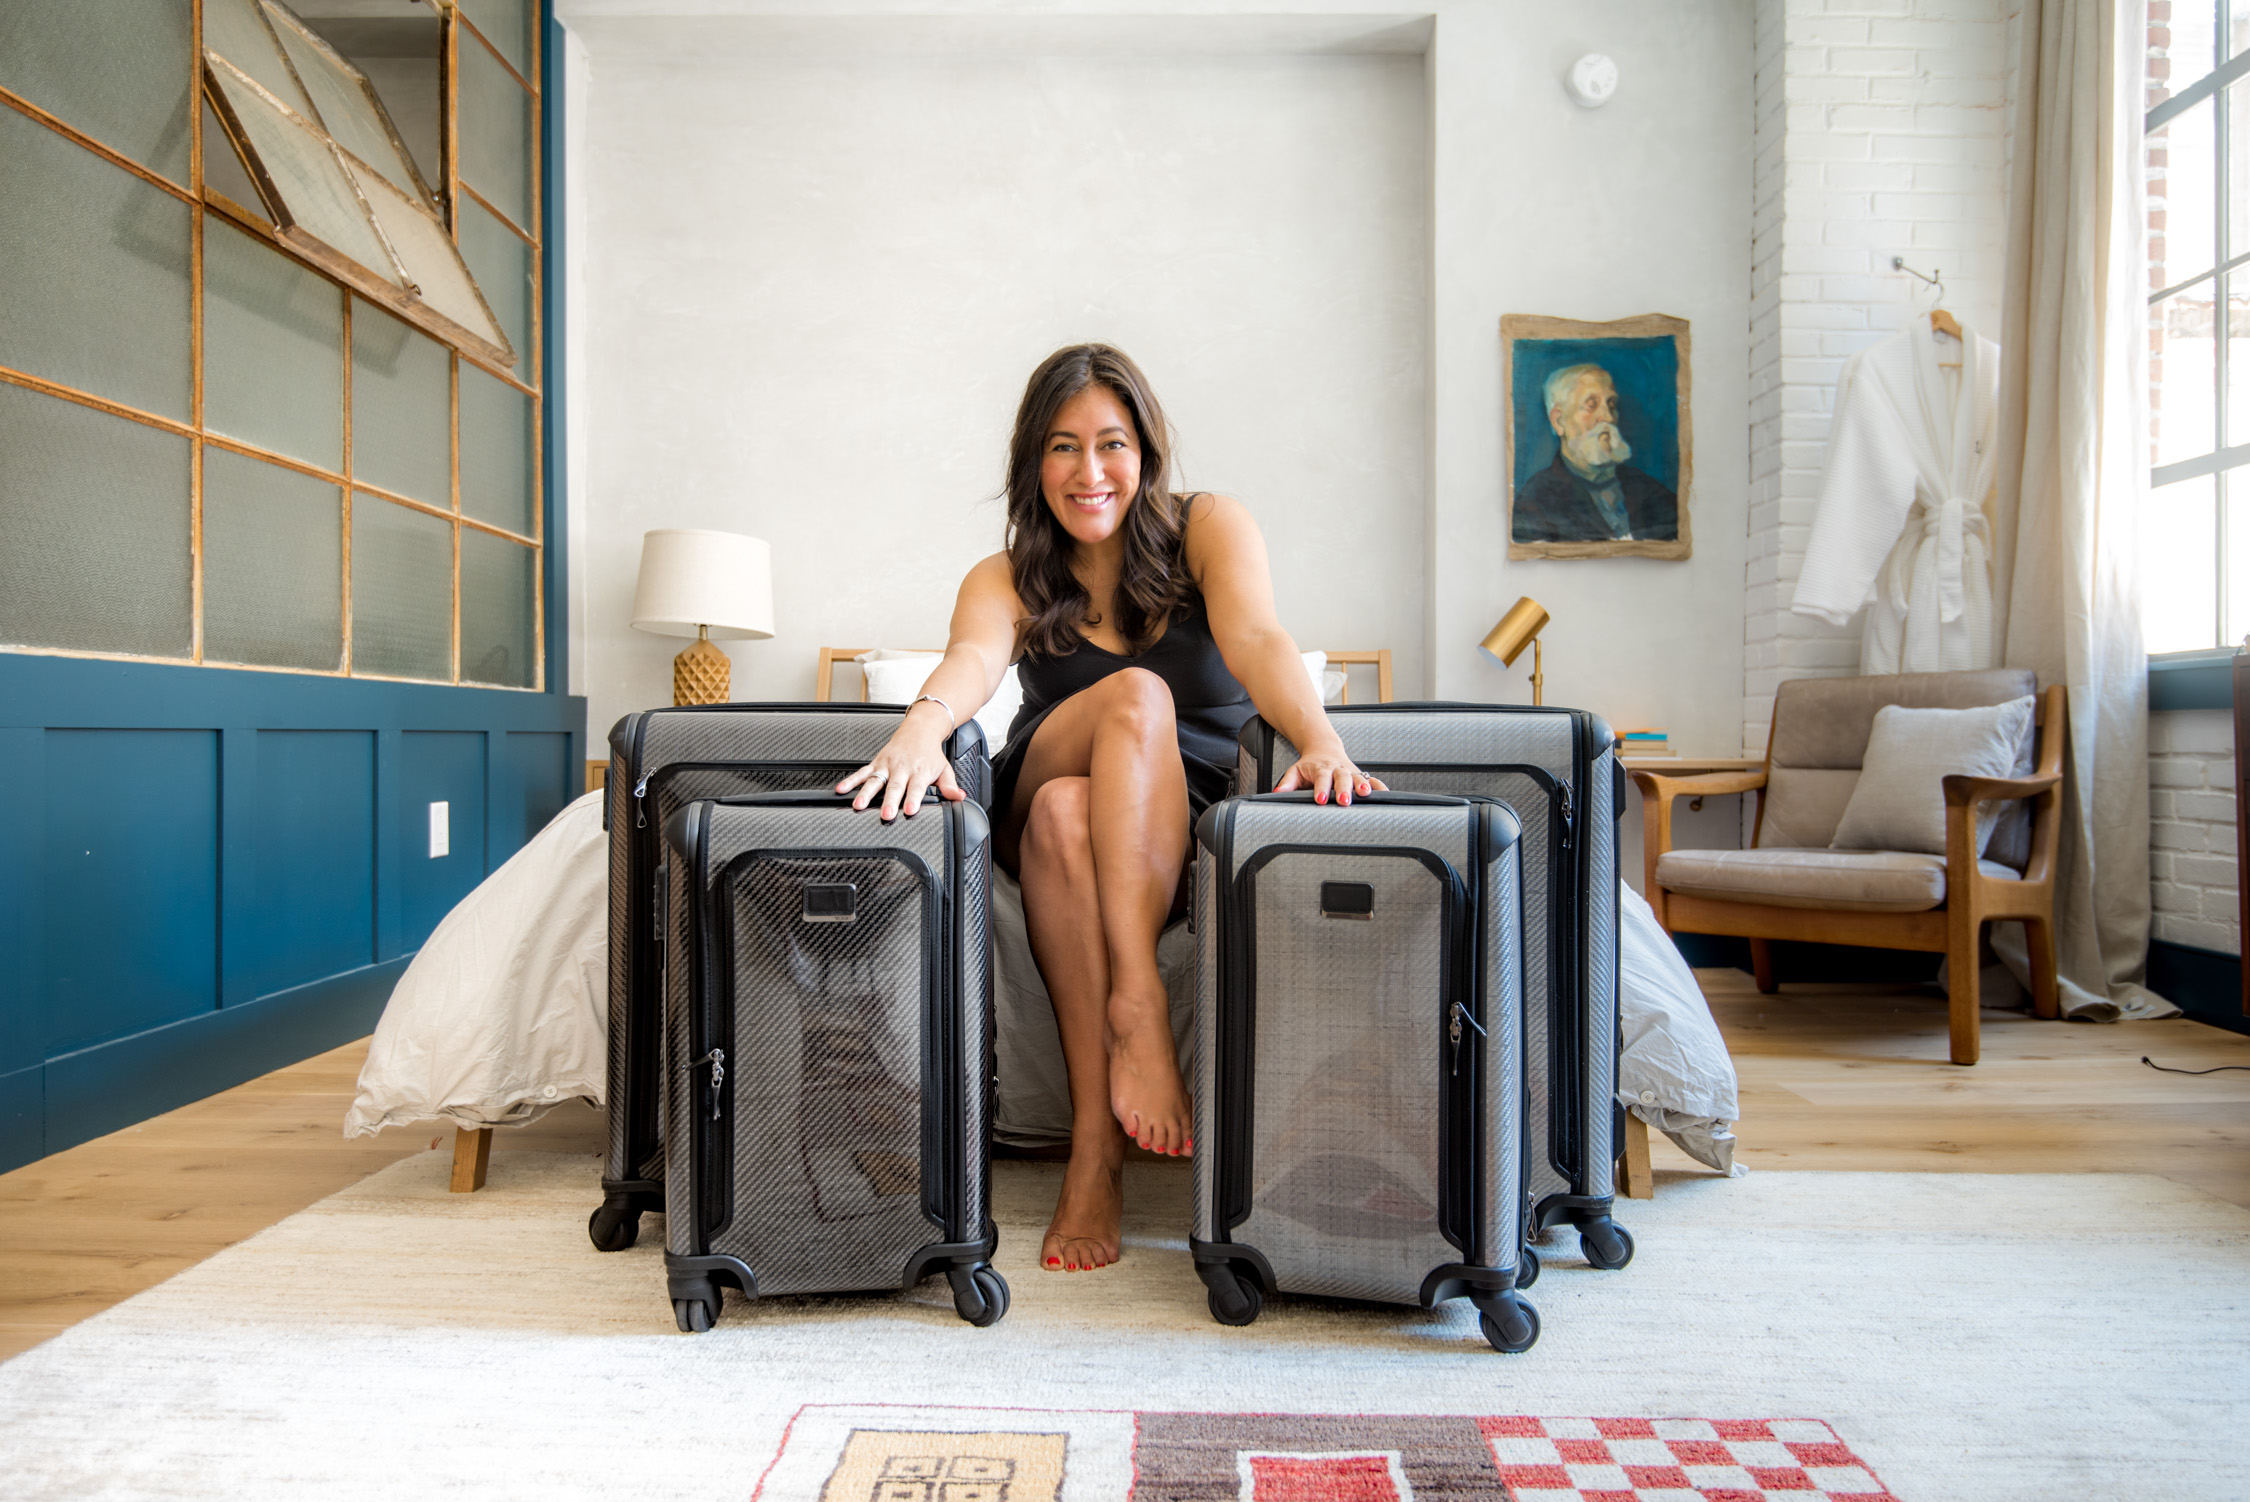 We love the style and durability of our Tumi luggage